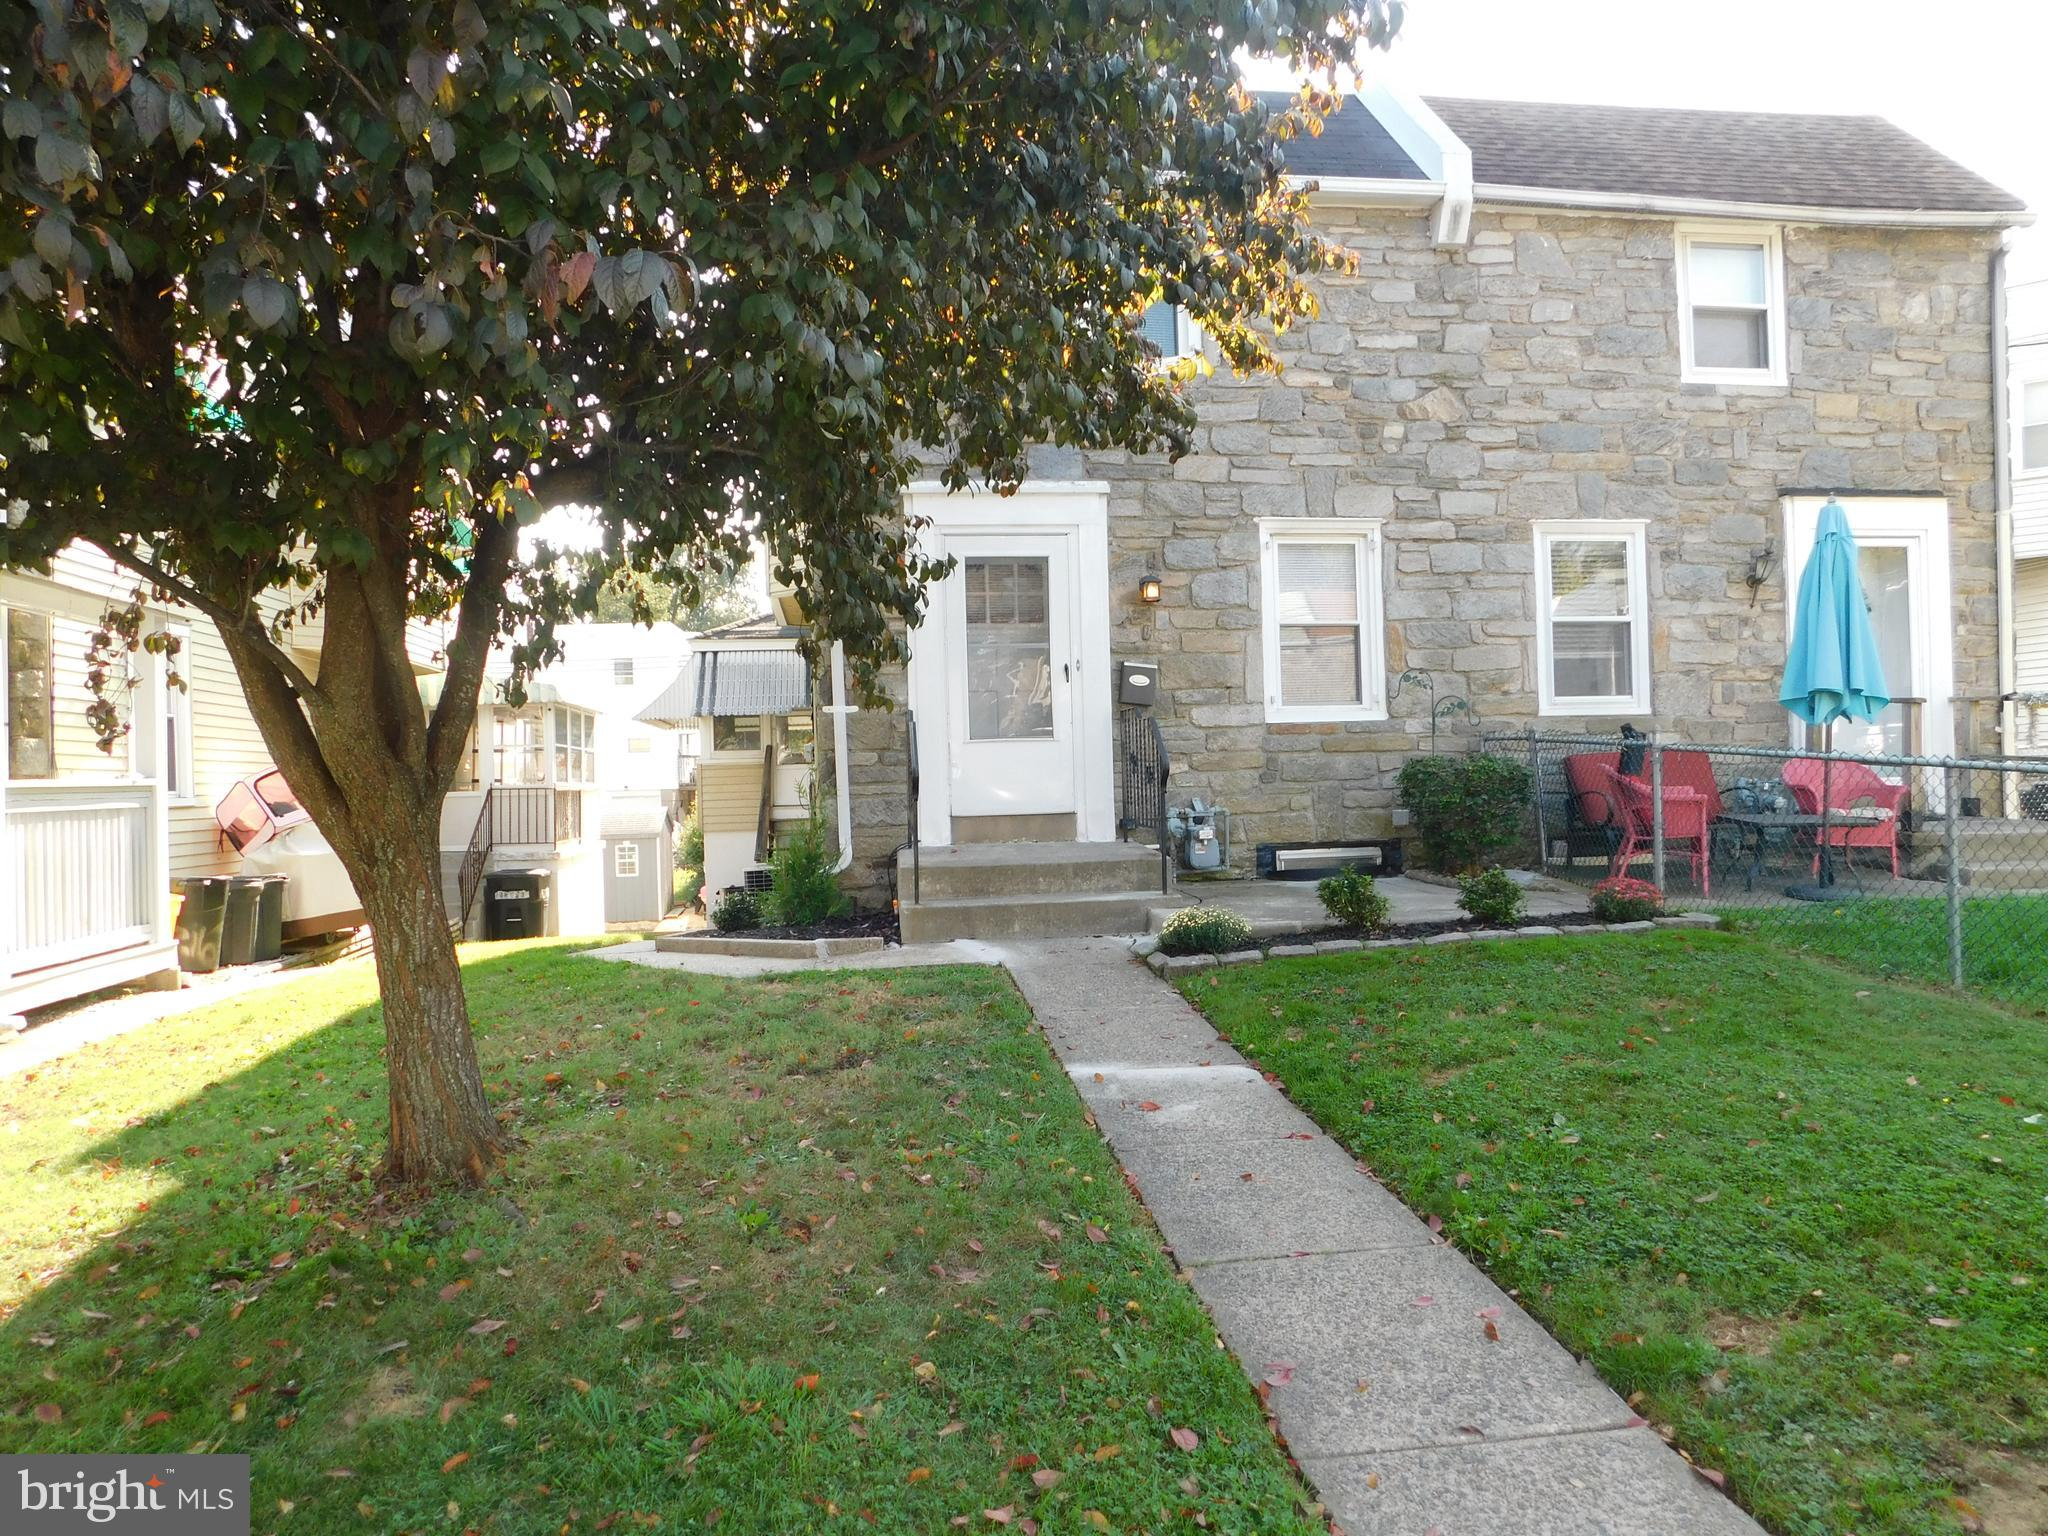 Well maintained stone twin home featuring  large living room, formal dining room, new modern eatin kitchen w/dishwasher, enclosed side  porch w/exit to side yard.  2nd floor has three nice sized bedrooms and a hall bath, Basement is finished w/separate laundry area and an outside exit to attached garage.  This lovely home also has a  front patio and a built in storage area under the side porch.  Convenient to shopping and public transportation